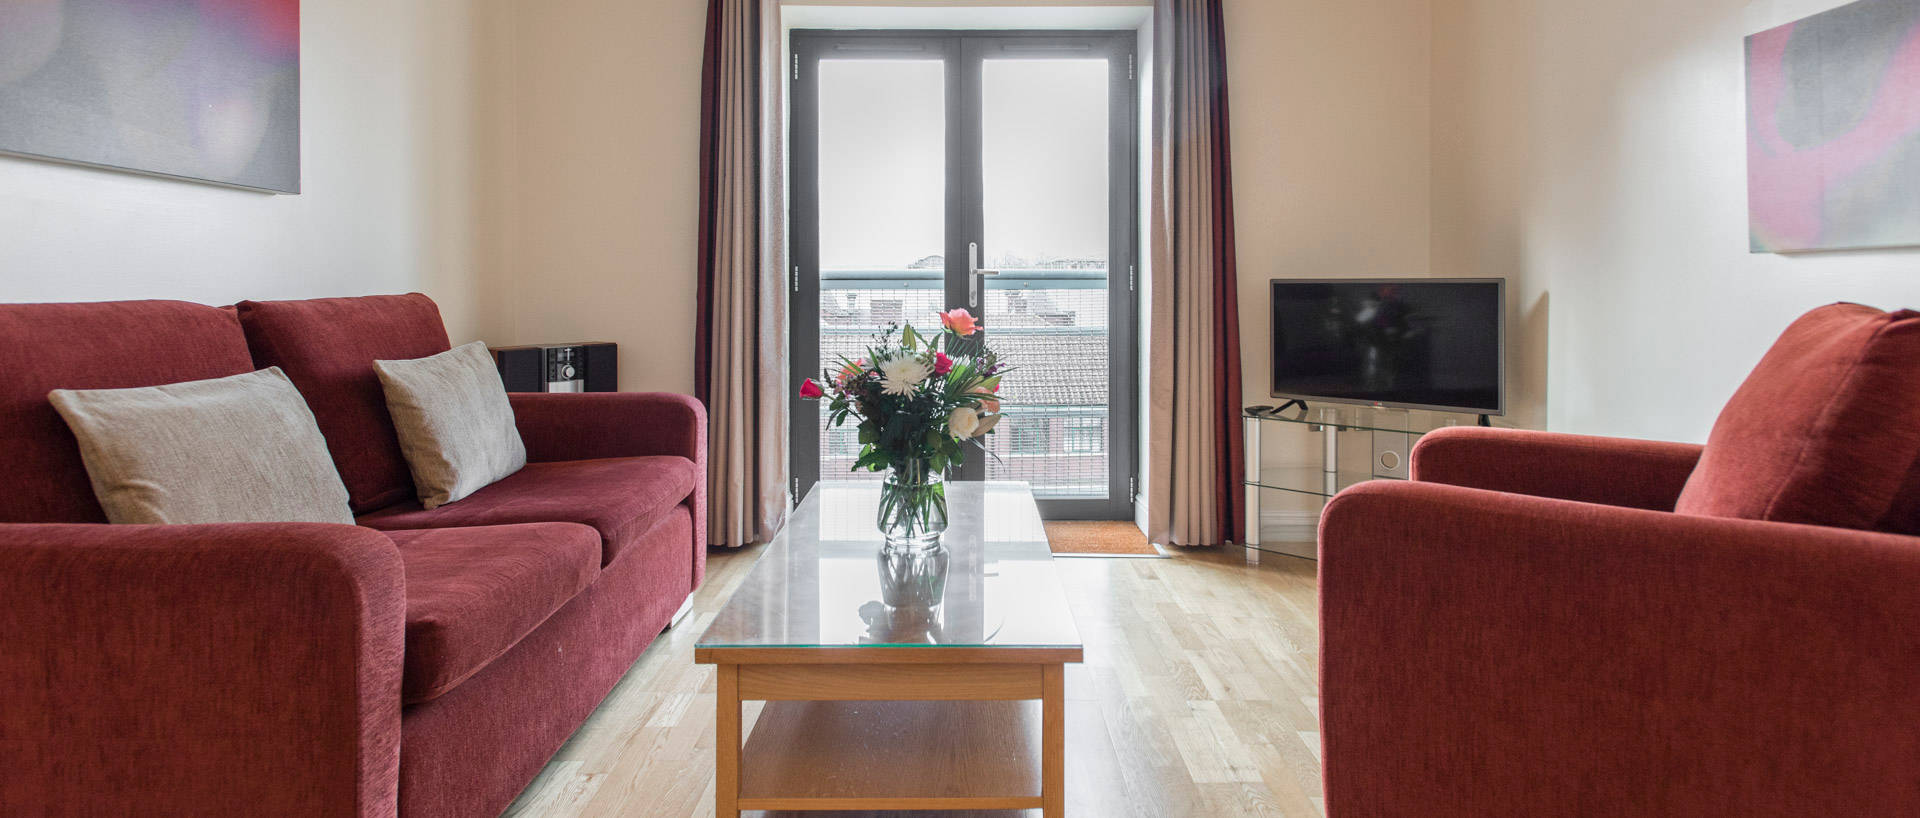 Spacious Serviced Apartments In The Beautiful City Of Bristol